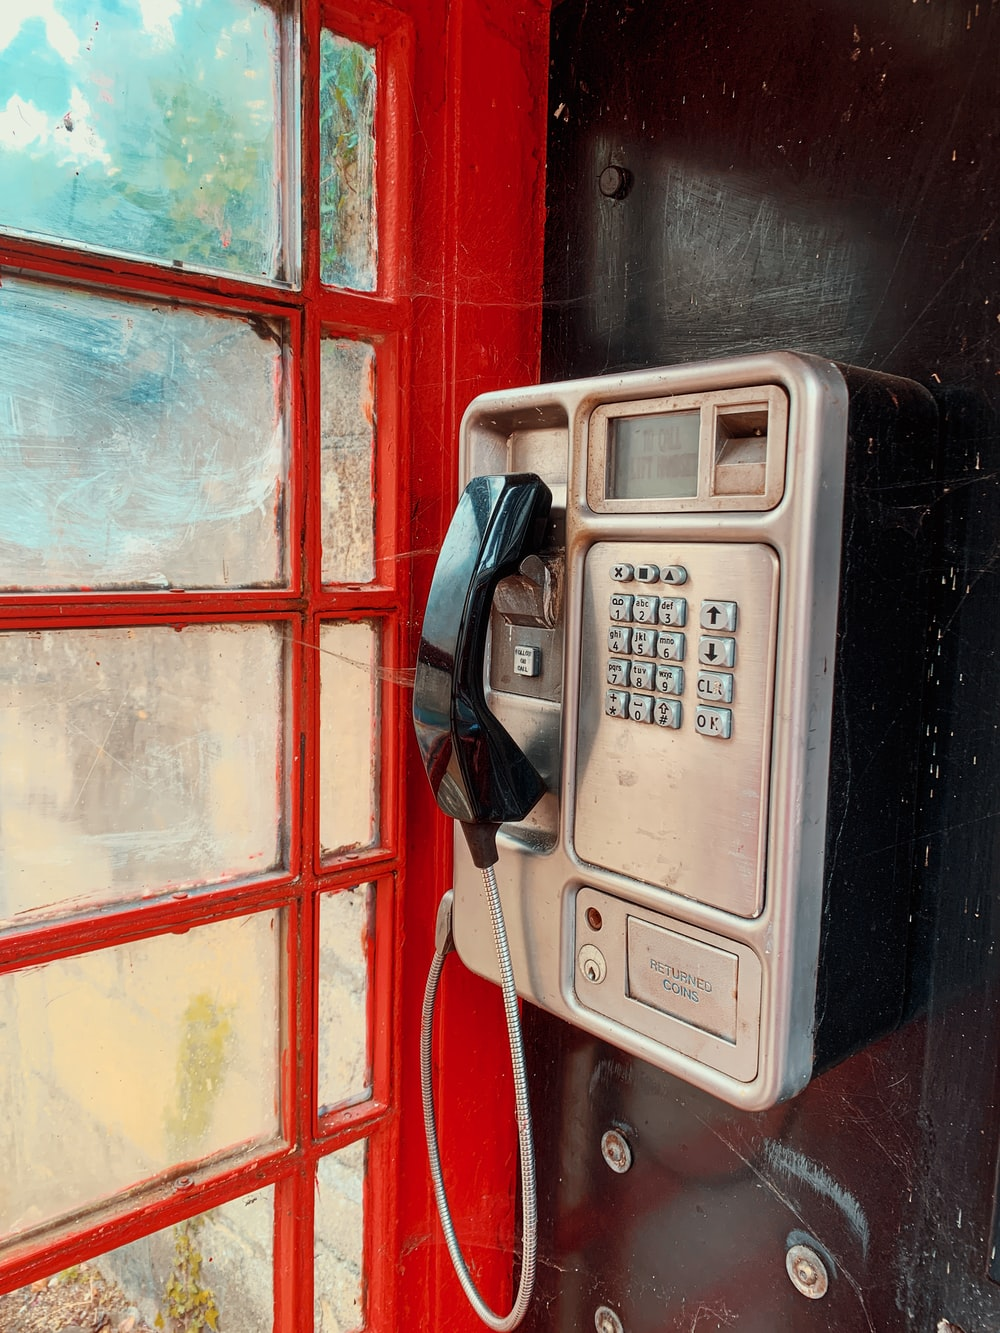 black and silver telephone on red and blue wooden wall